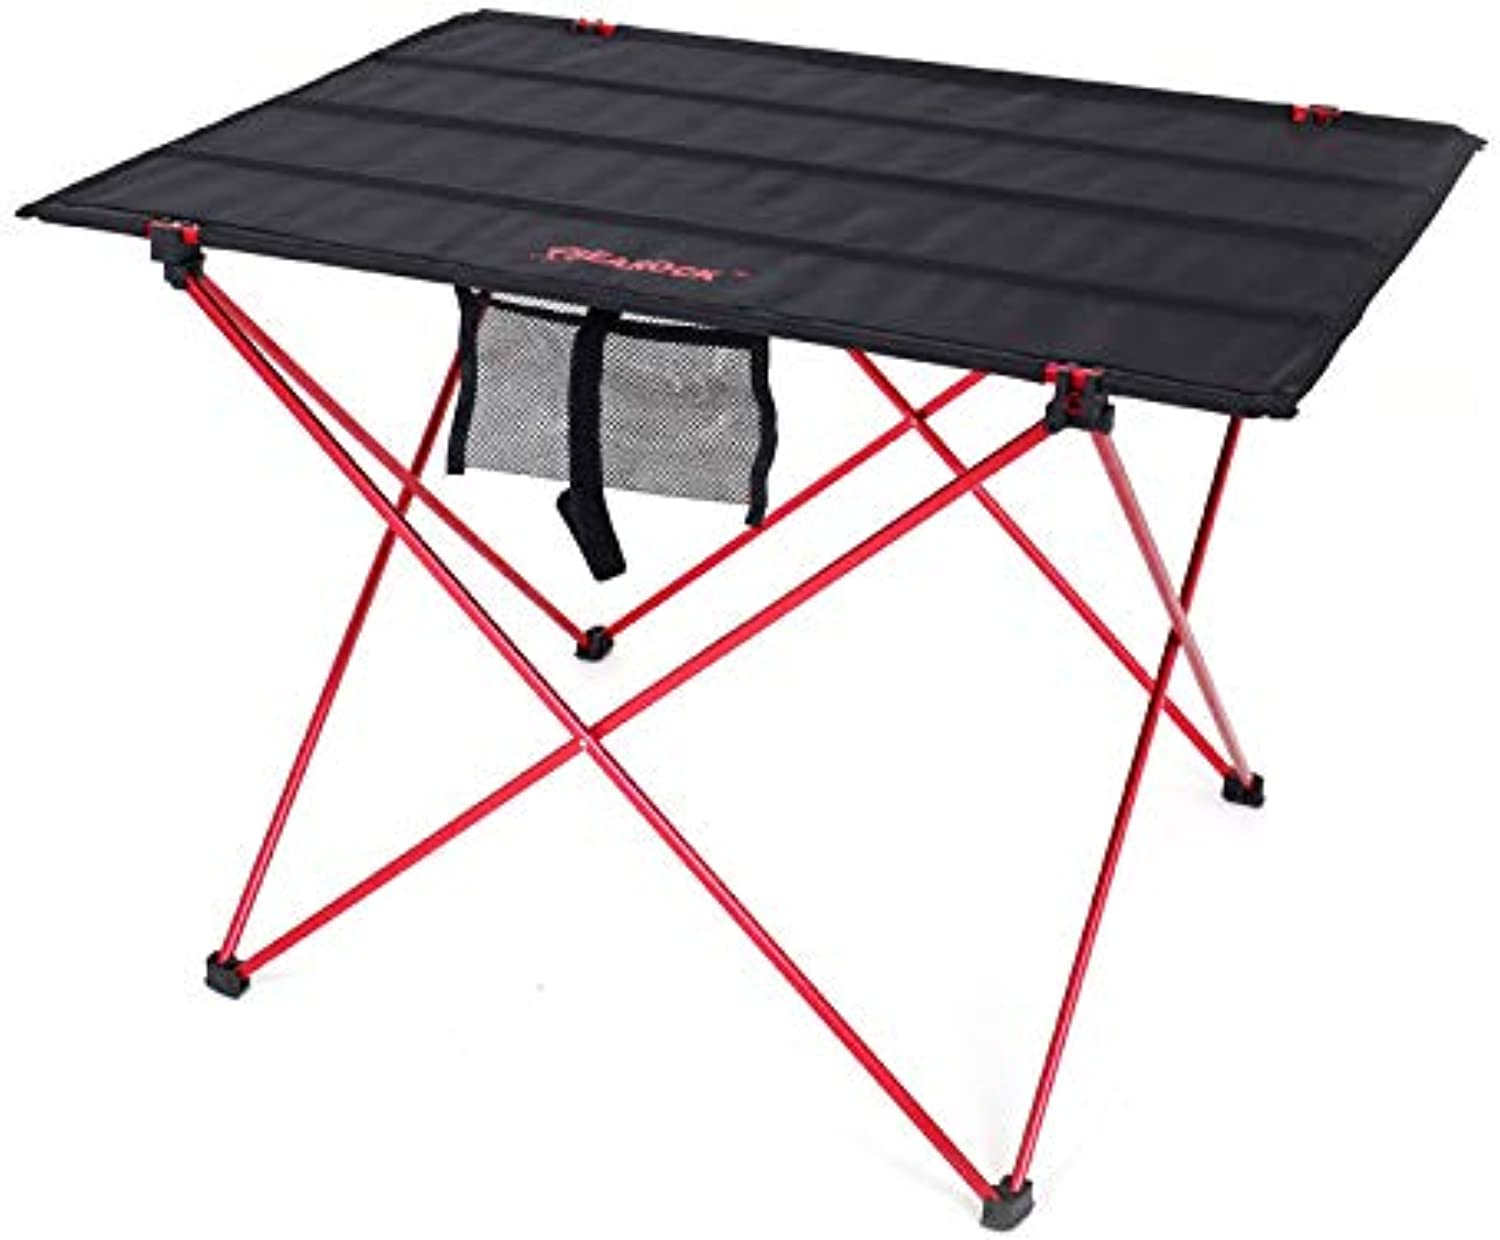 Folding Camping Picnic Table Portable Stool Chair Aluminum Lightweight with Carrying Bag for Hiking Beach Fishing Camping,C